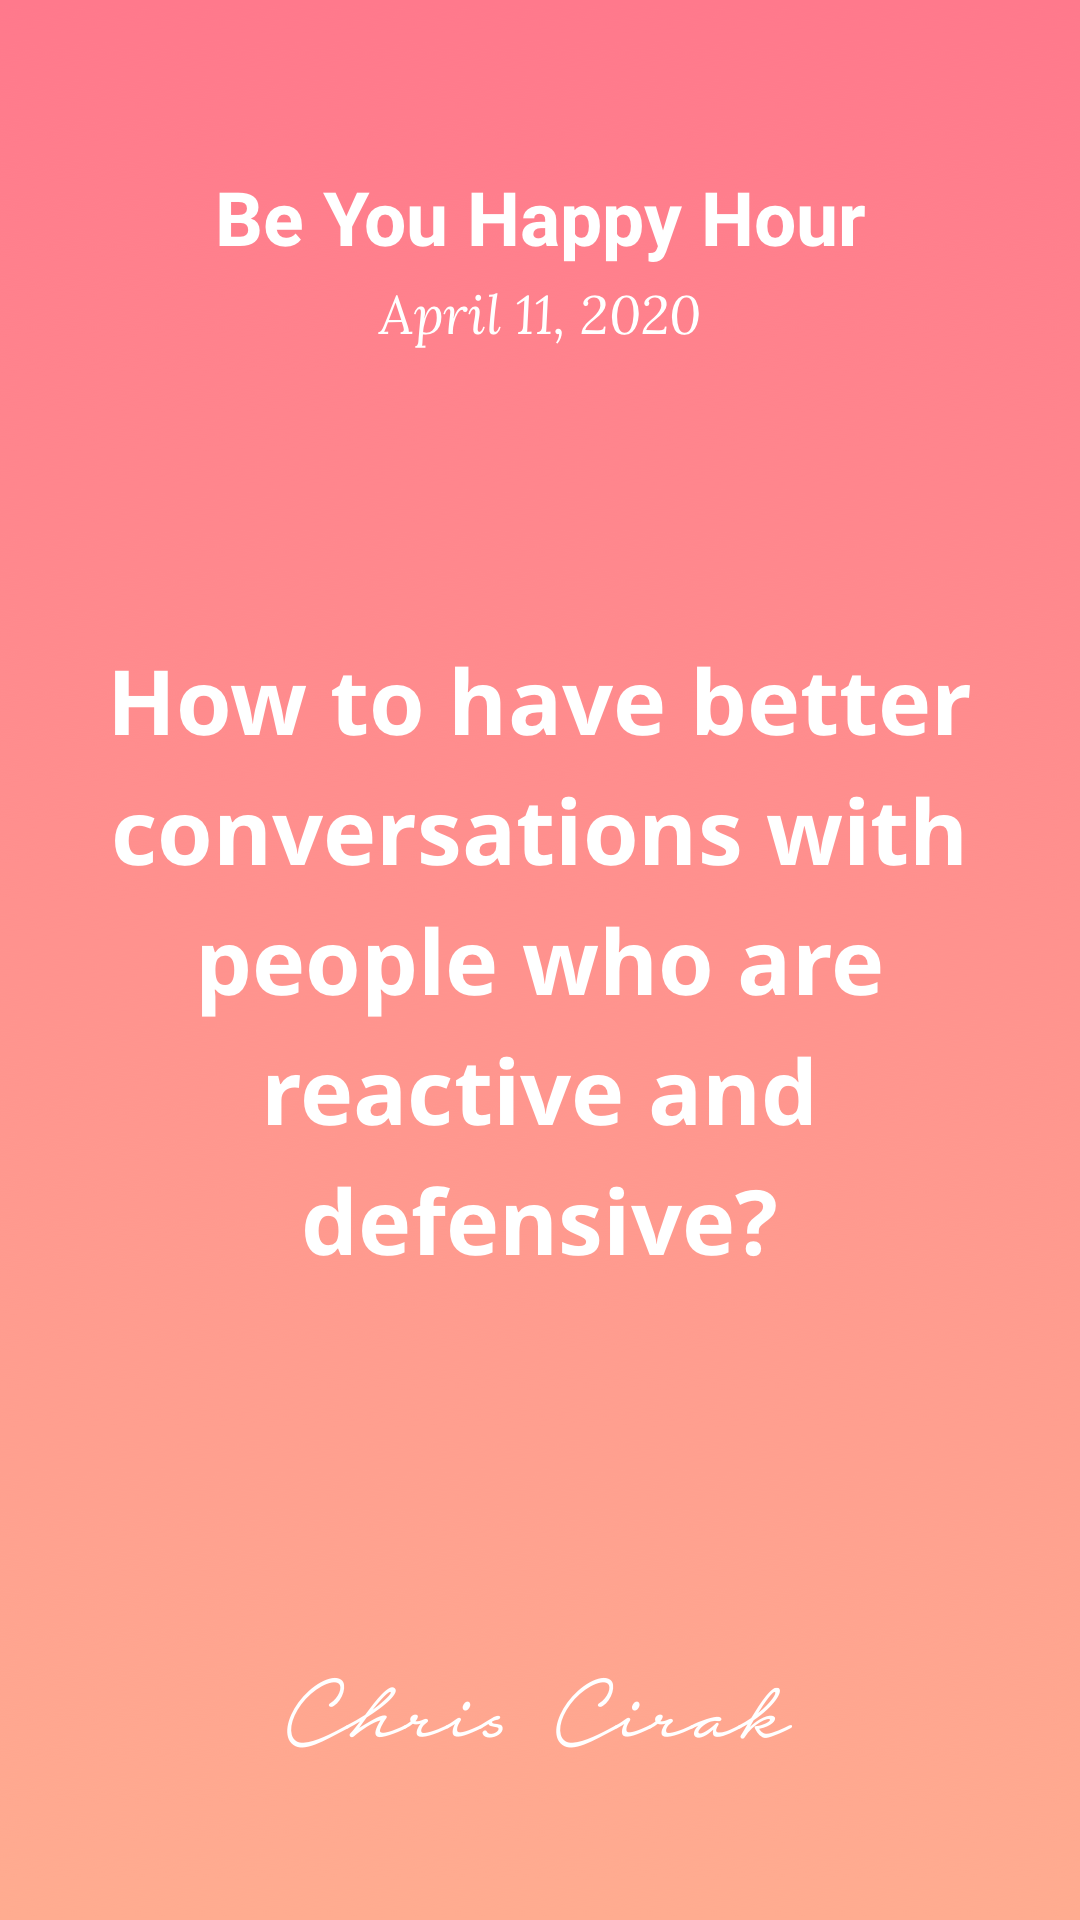 How to have better conversations with people who are highly reactive?